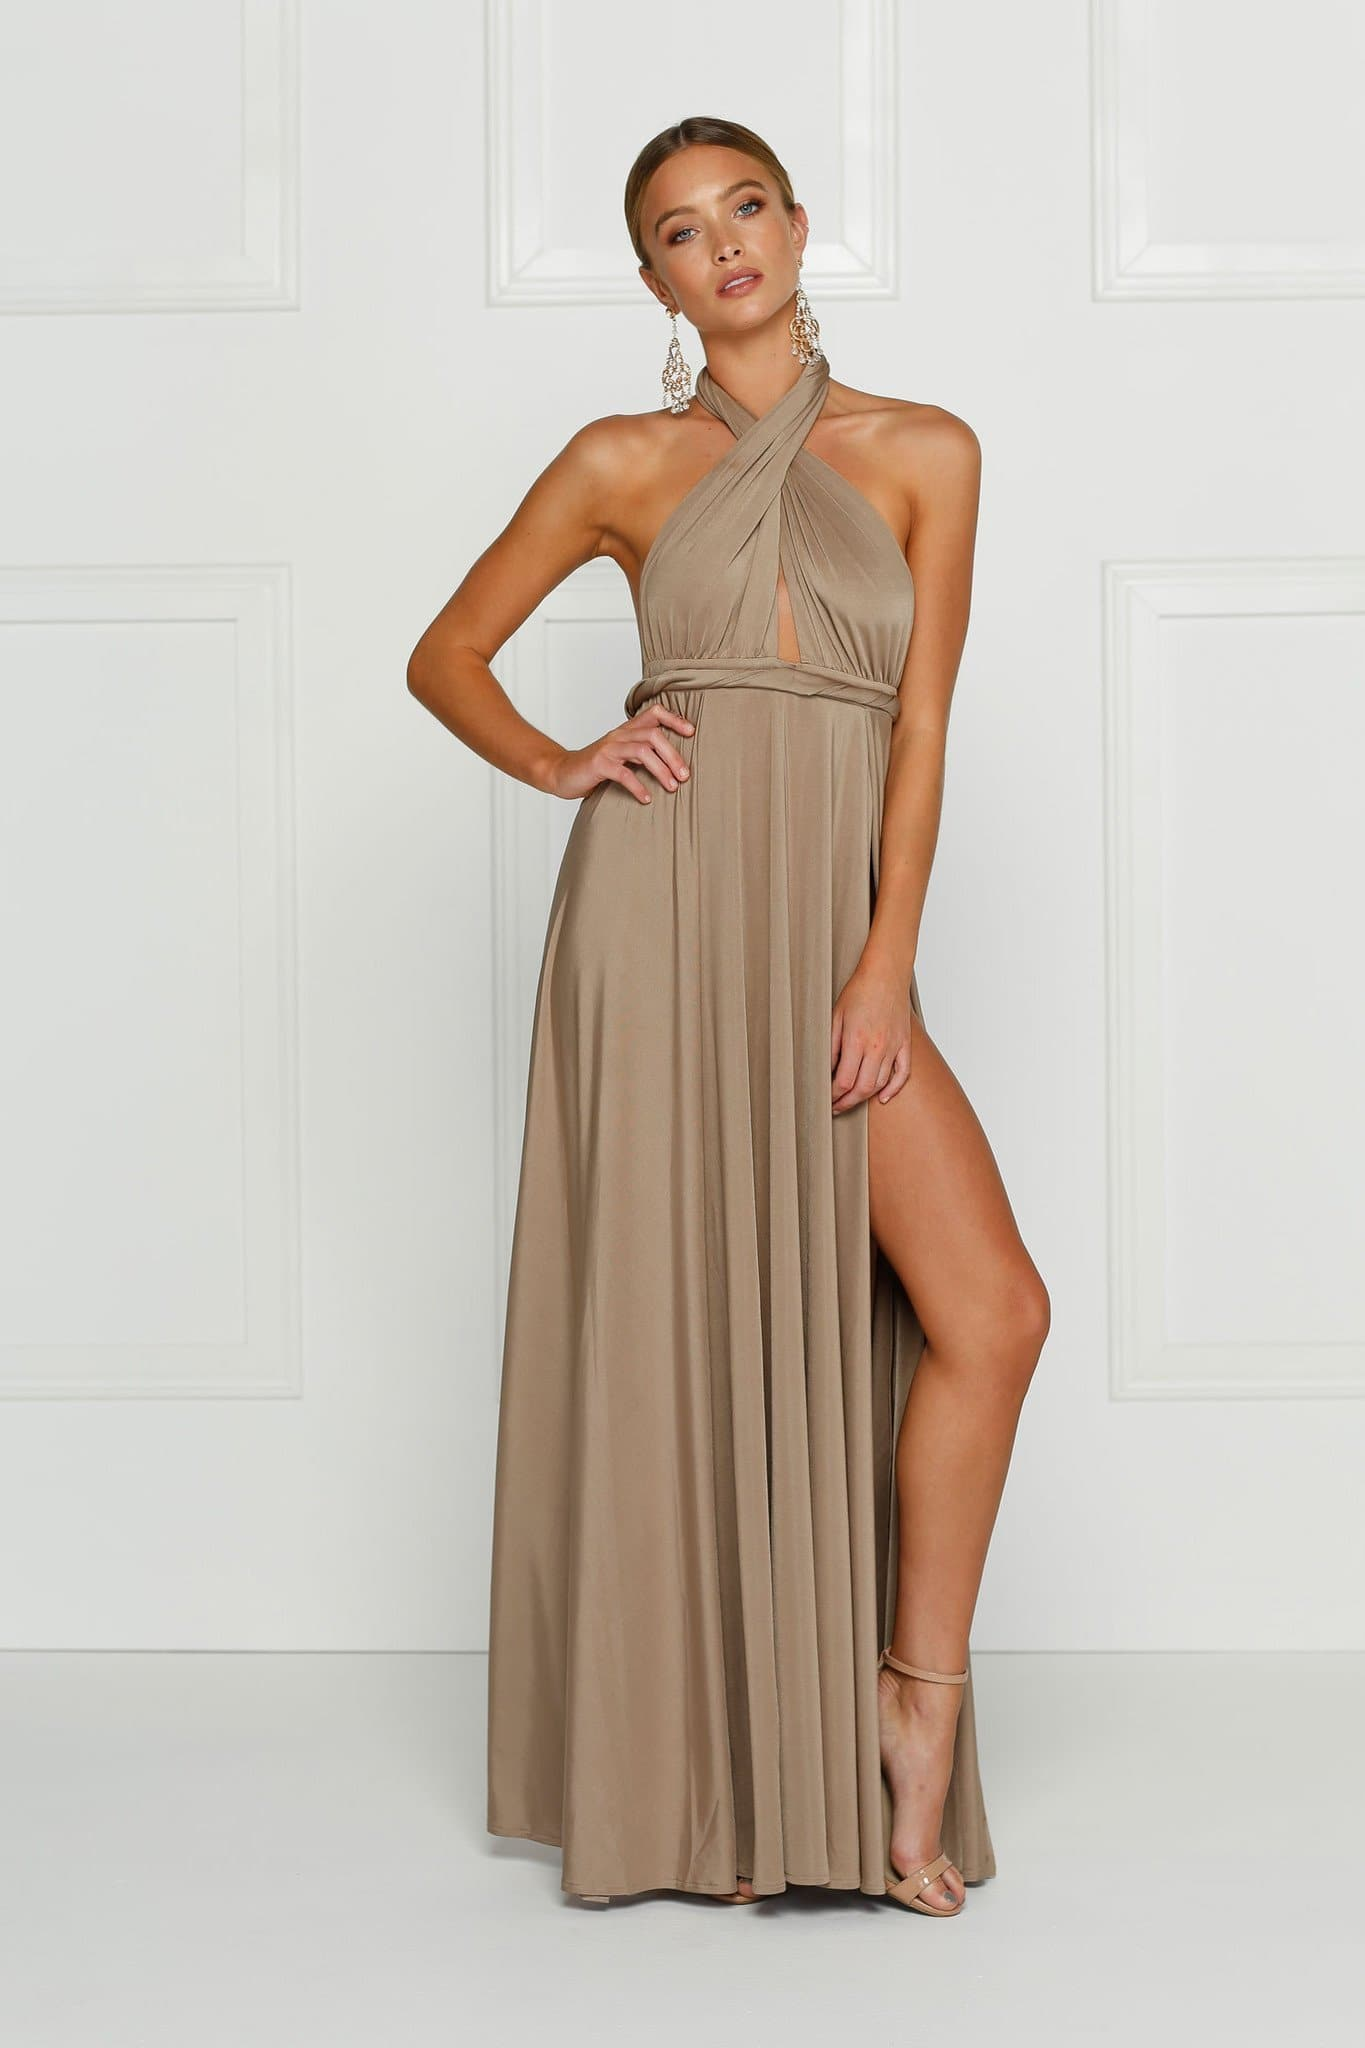 Catalina - Bronze Grecian Style Jersey Gown with Slit